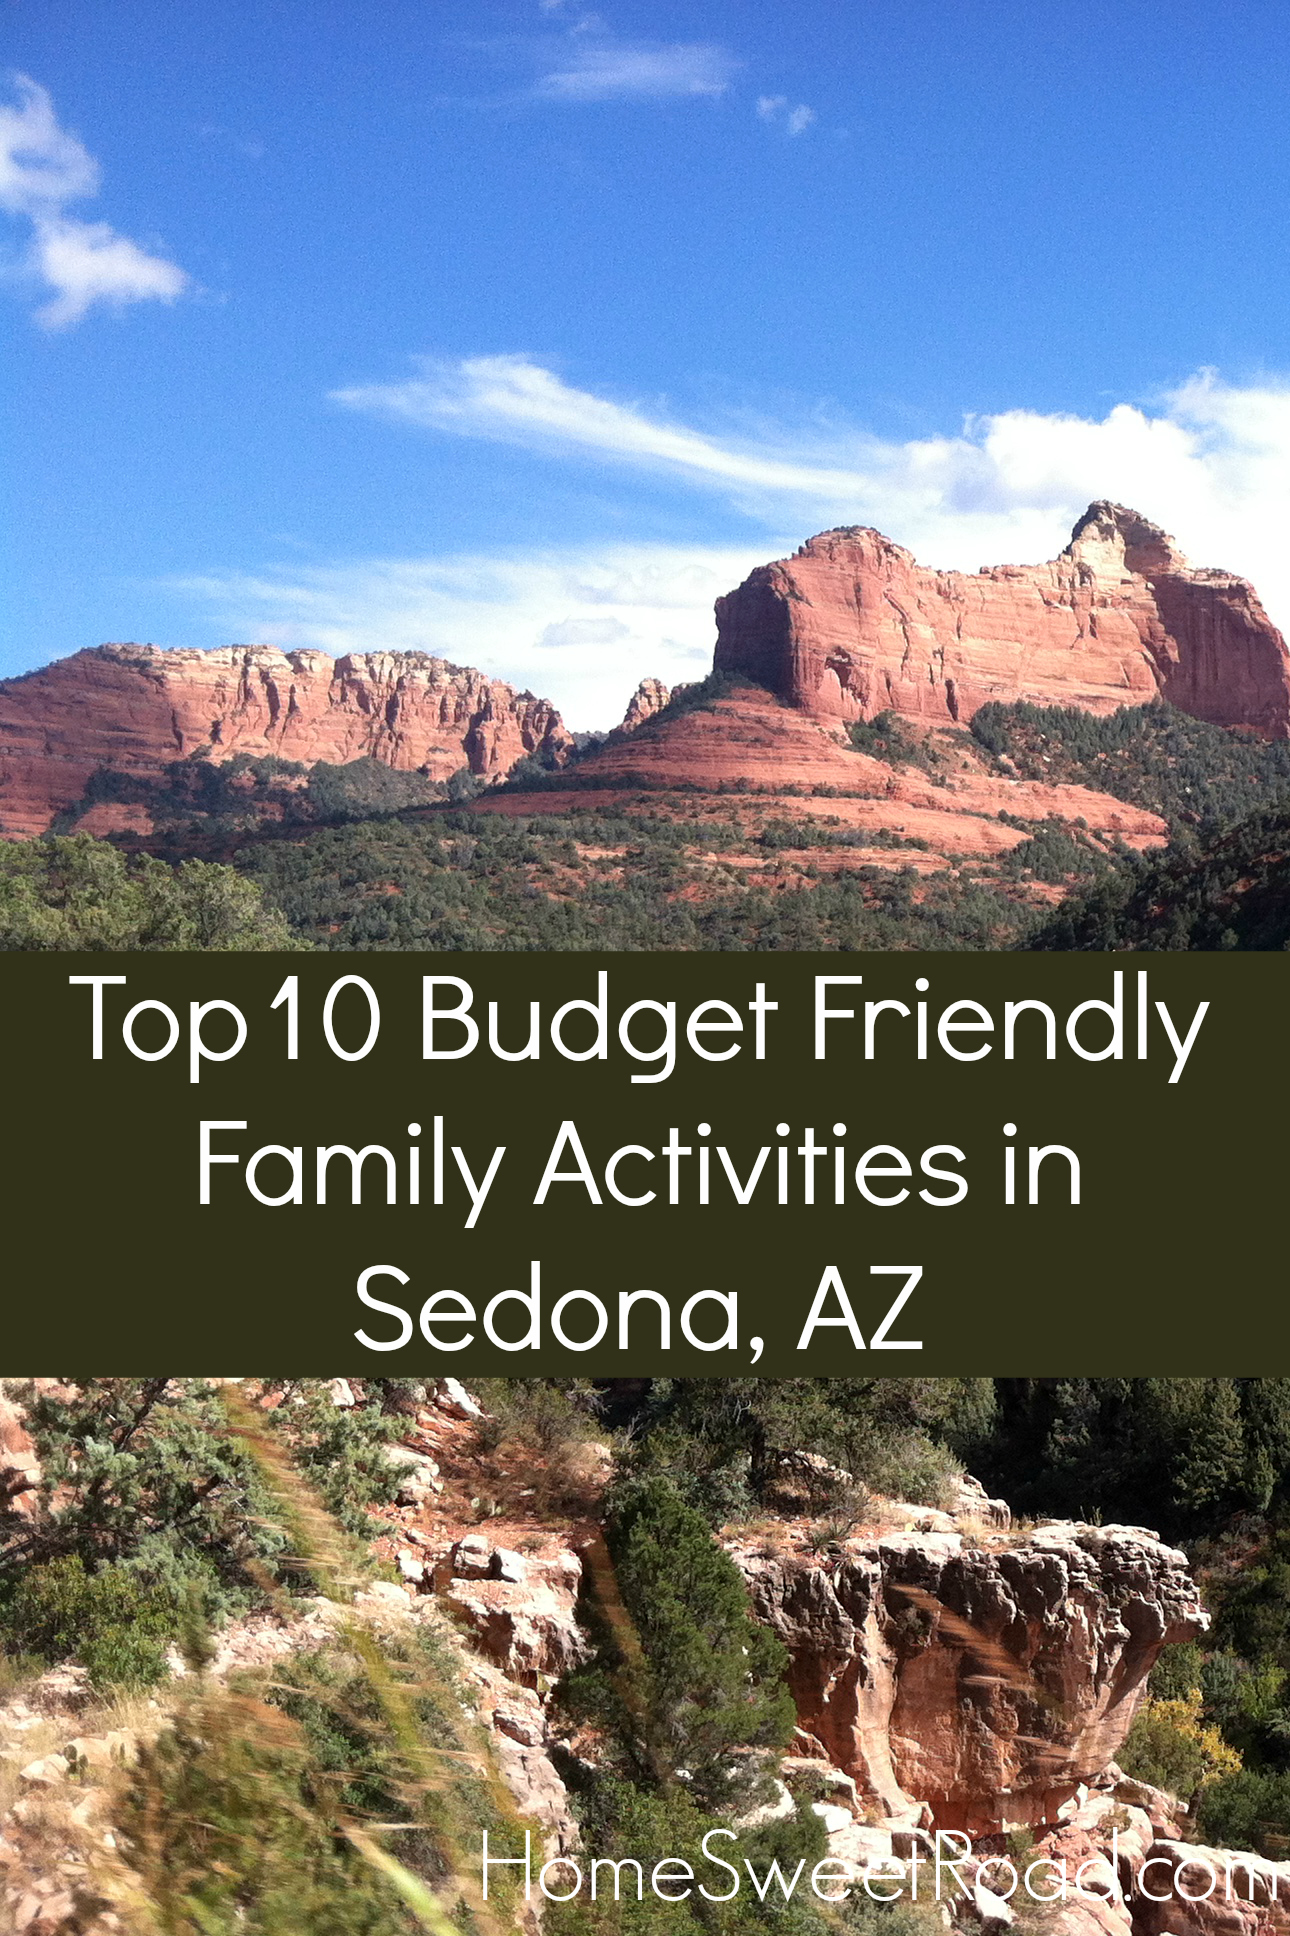 Things To Do In Sedona AZ Top Budget Friendly Activities - 10 things to see and do in sedona